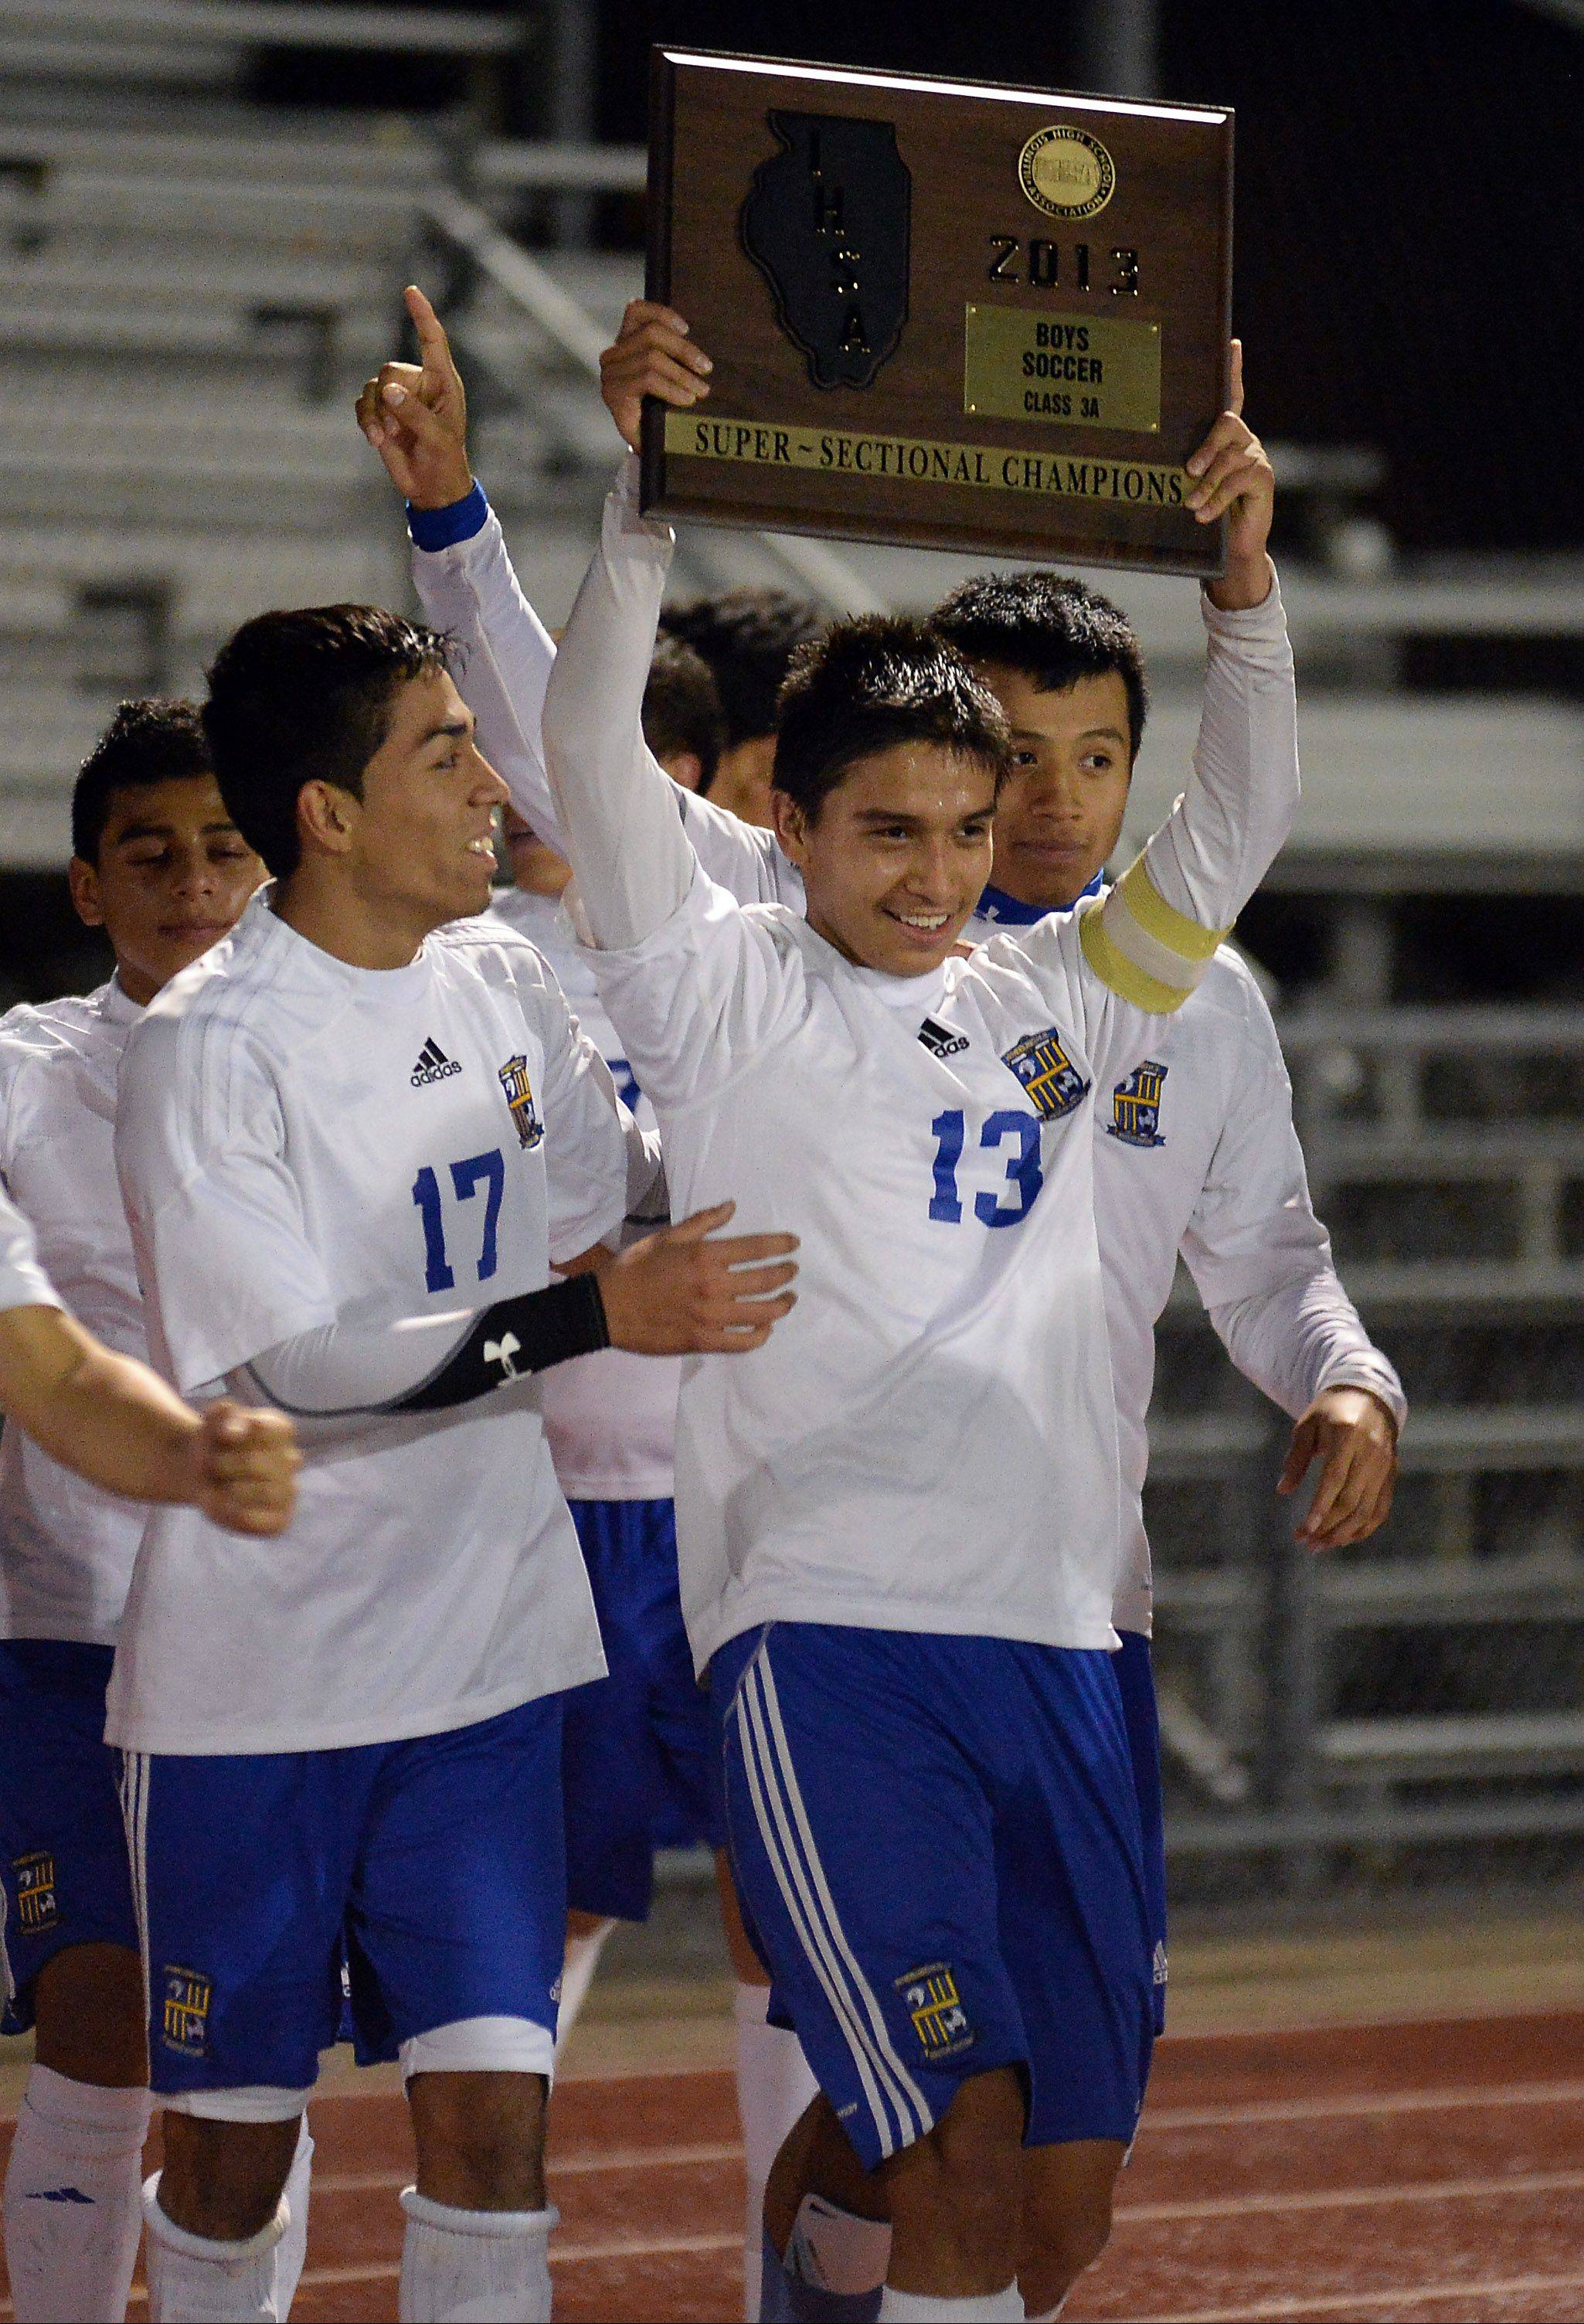 Wheeling's Jose Garcia and teammate Michael Hernandez celebrate their 2-1 victory over Barrington in the Class 3A supersectional at Hersey on Tuesday.